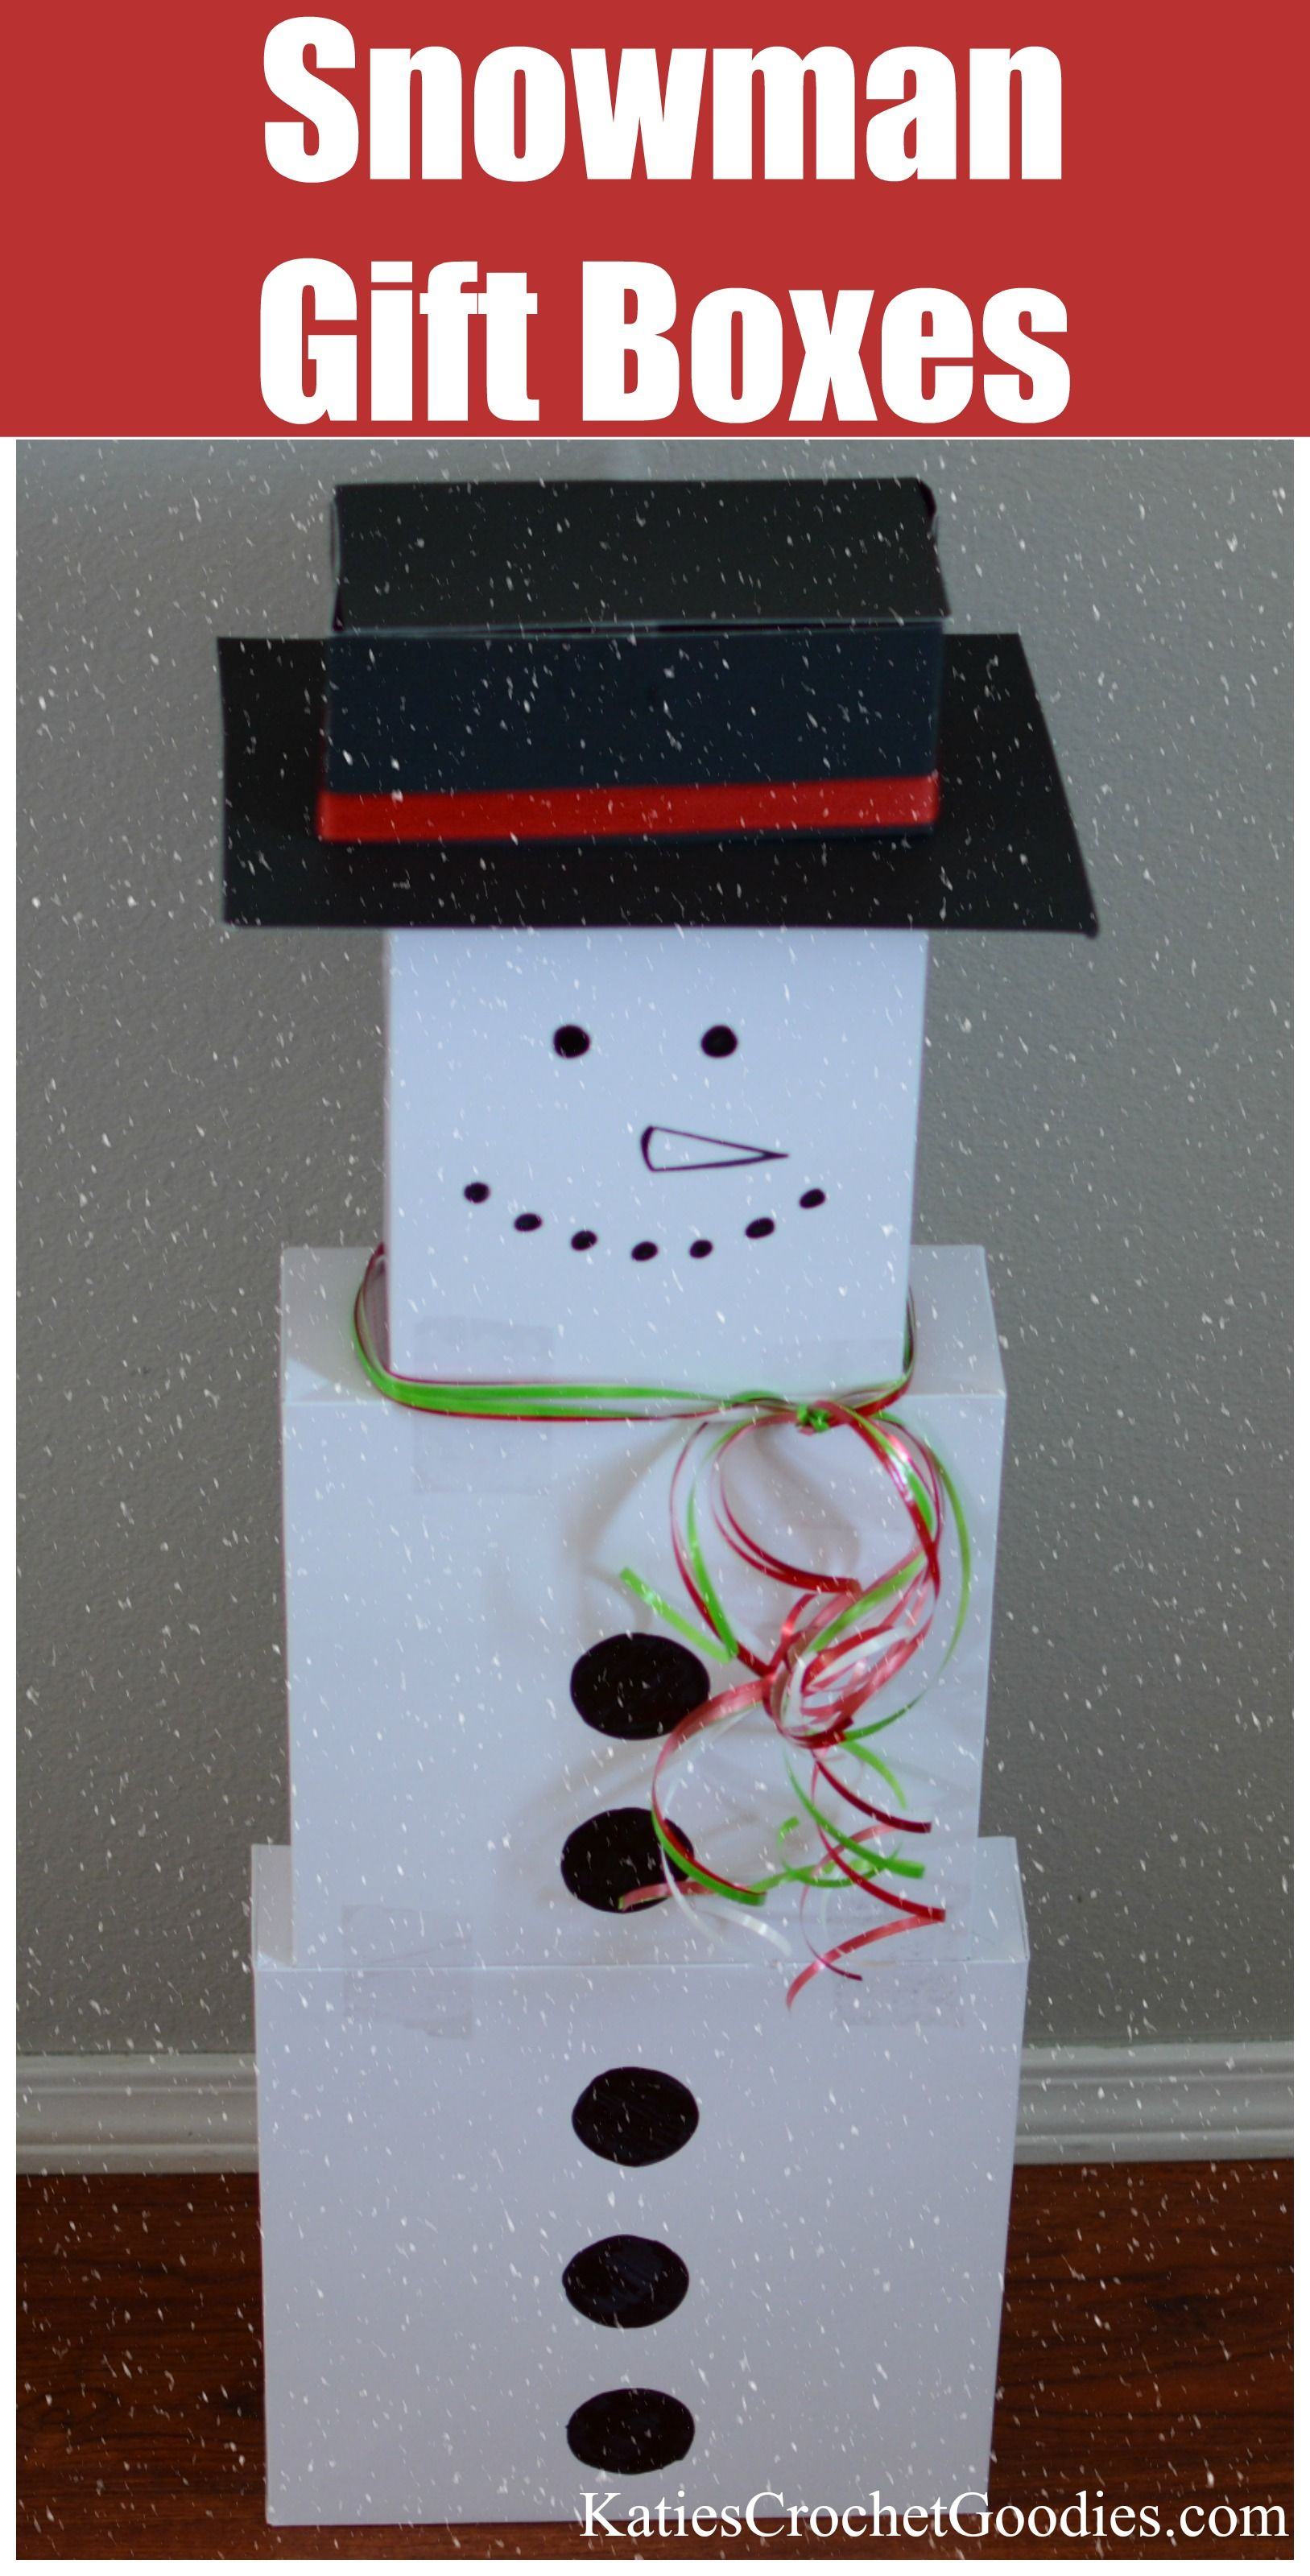 Snowman Gift Boxes Winter Activities For Kids Diy Snowman Gifts